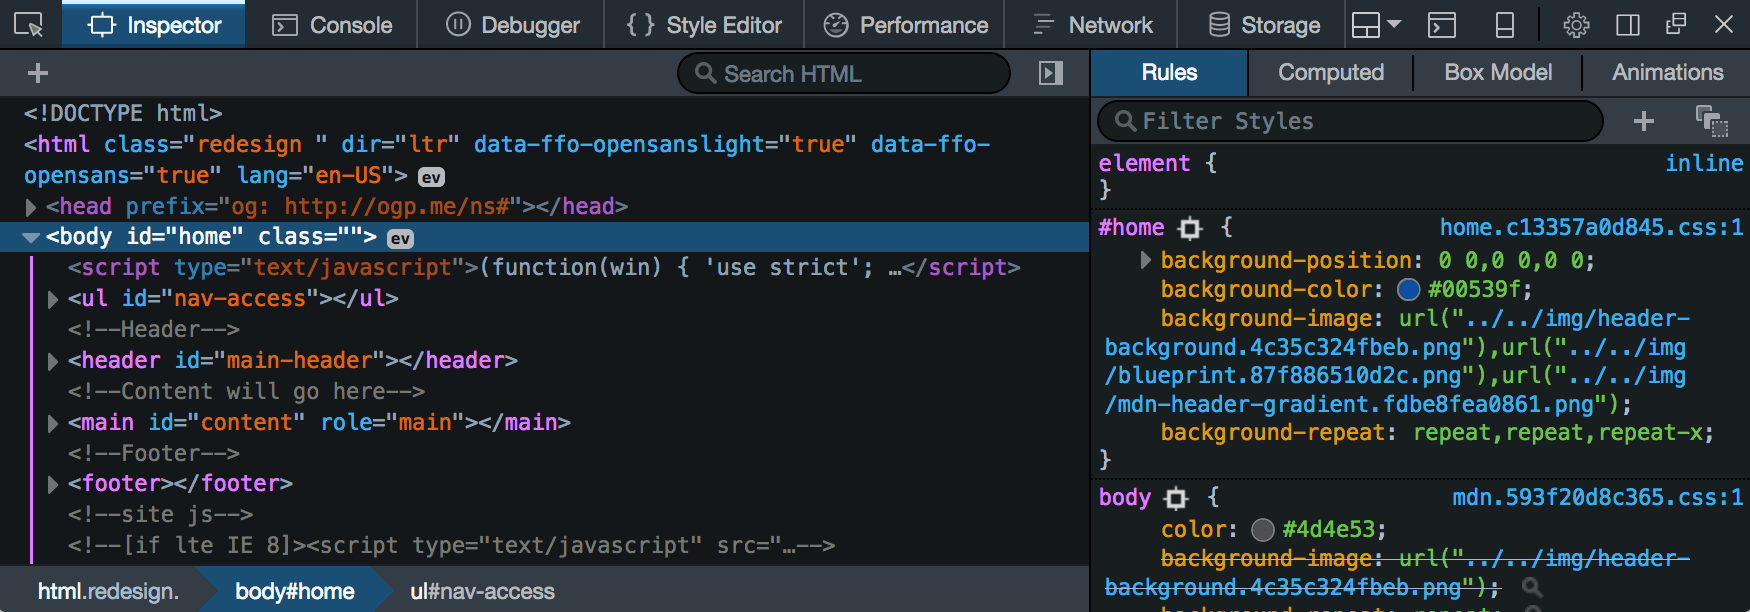 Dark theme for DevTools